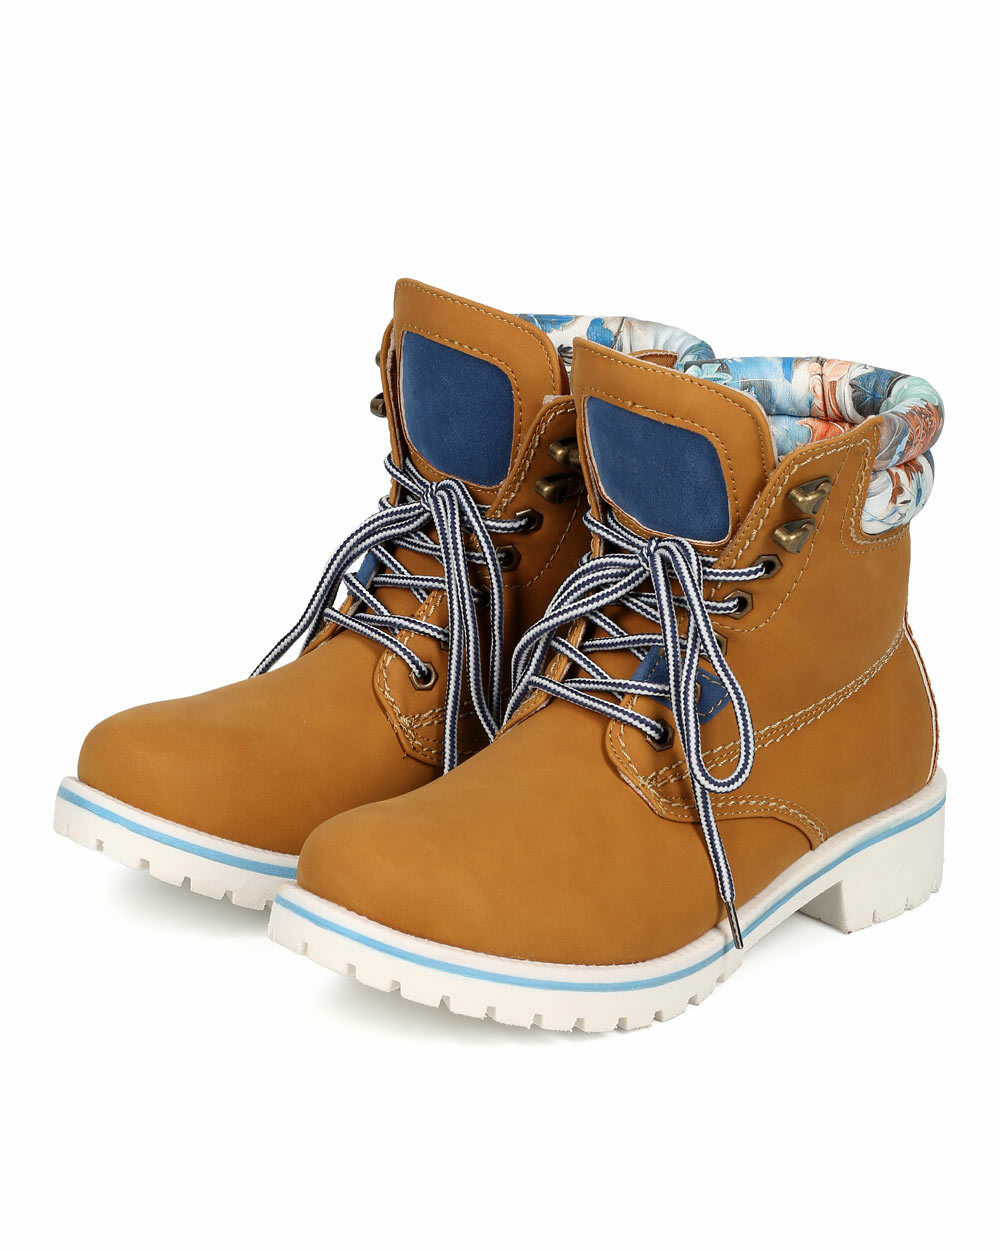 New Women Nature Breeze Sierra-01 Leatherette Lace Up Two Tone Lug Work Boot